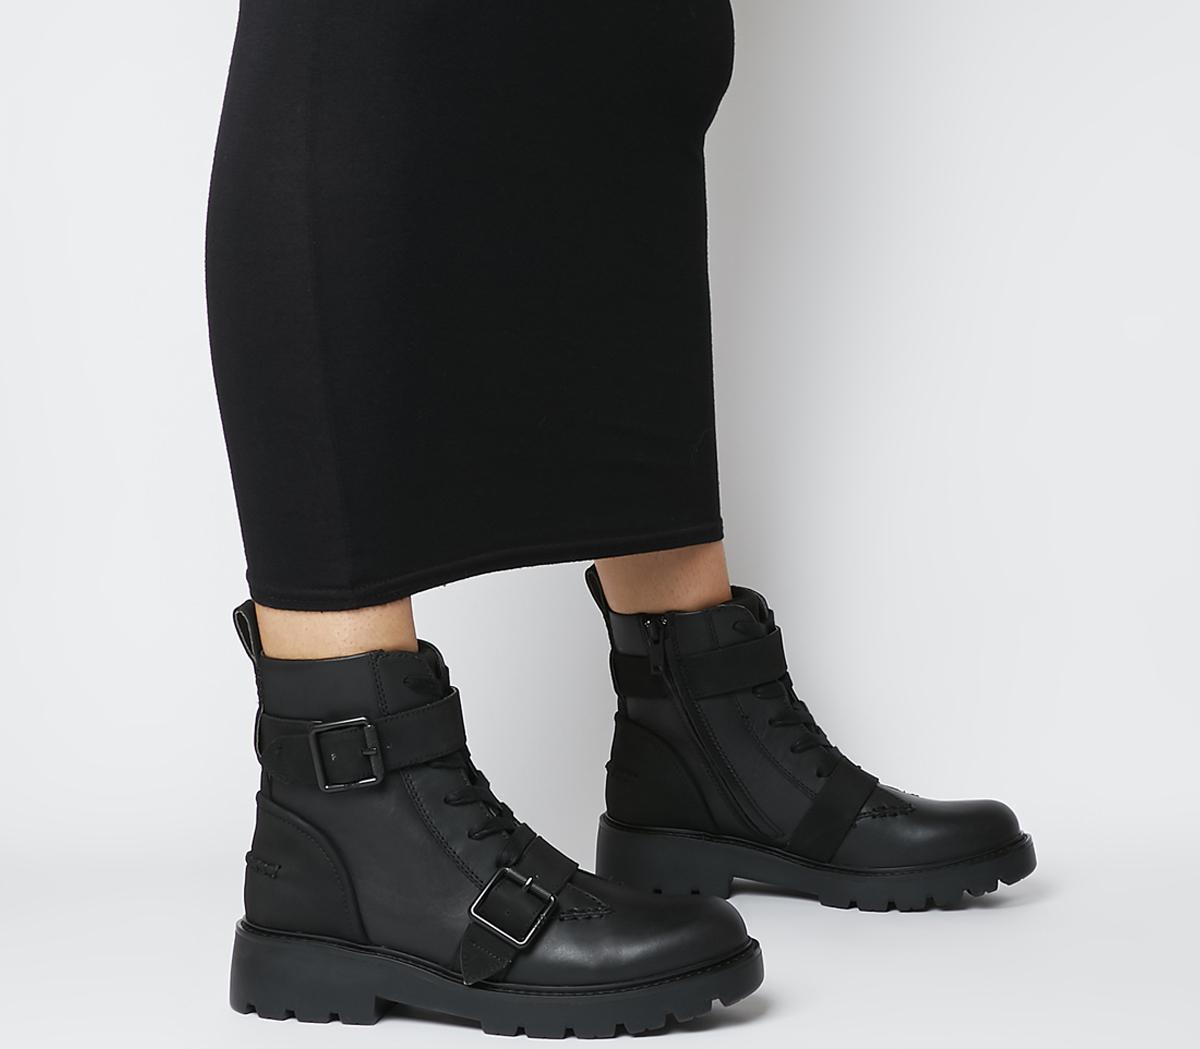 UGG Noe Boots Black - Ankle Boots